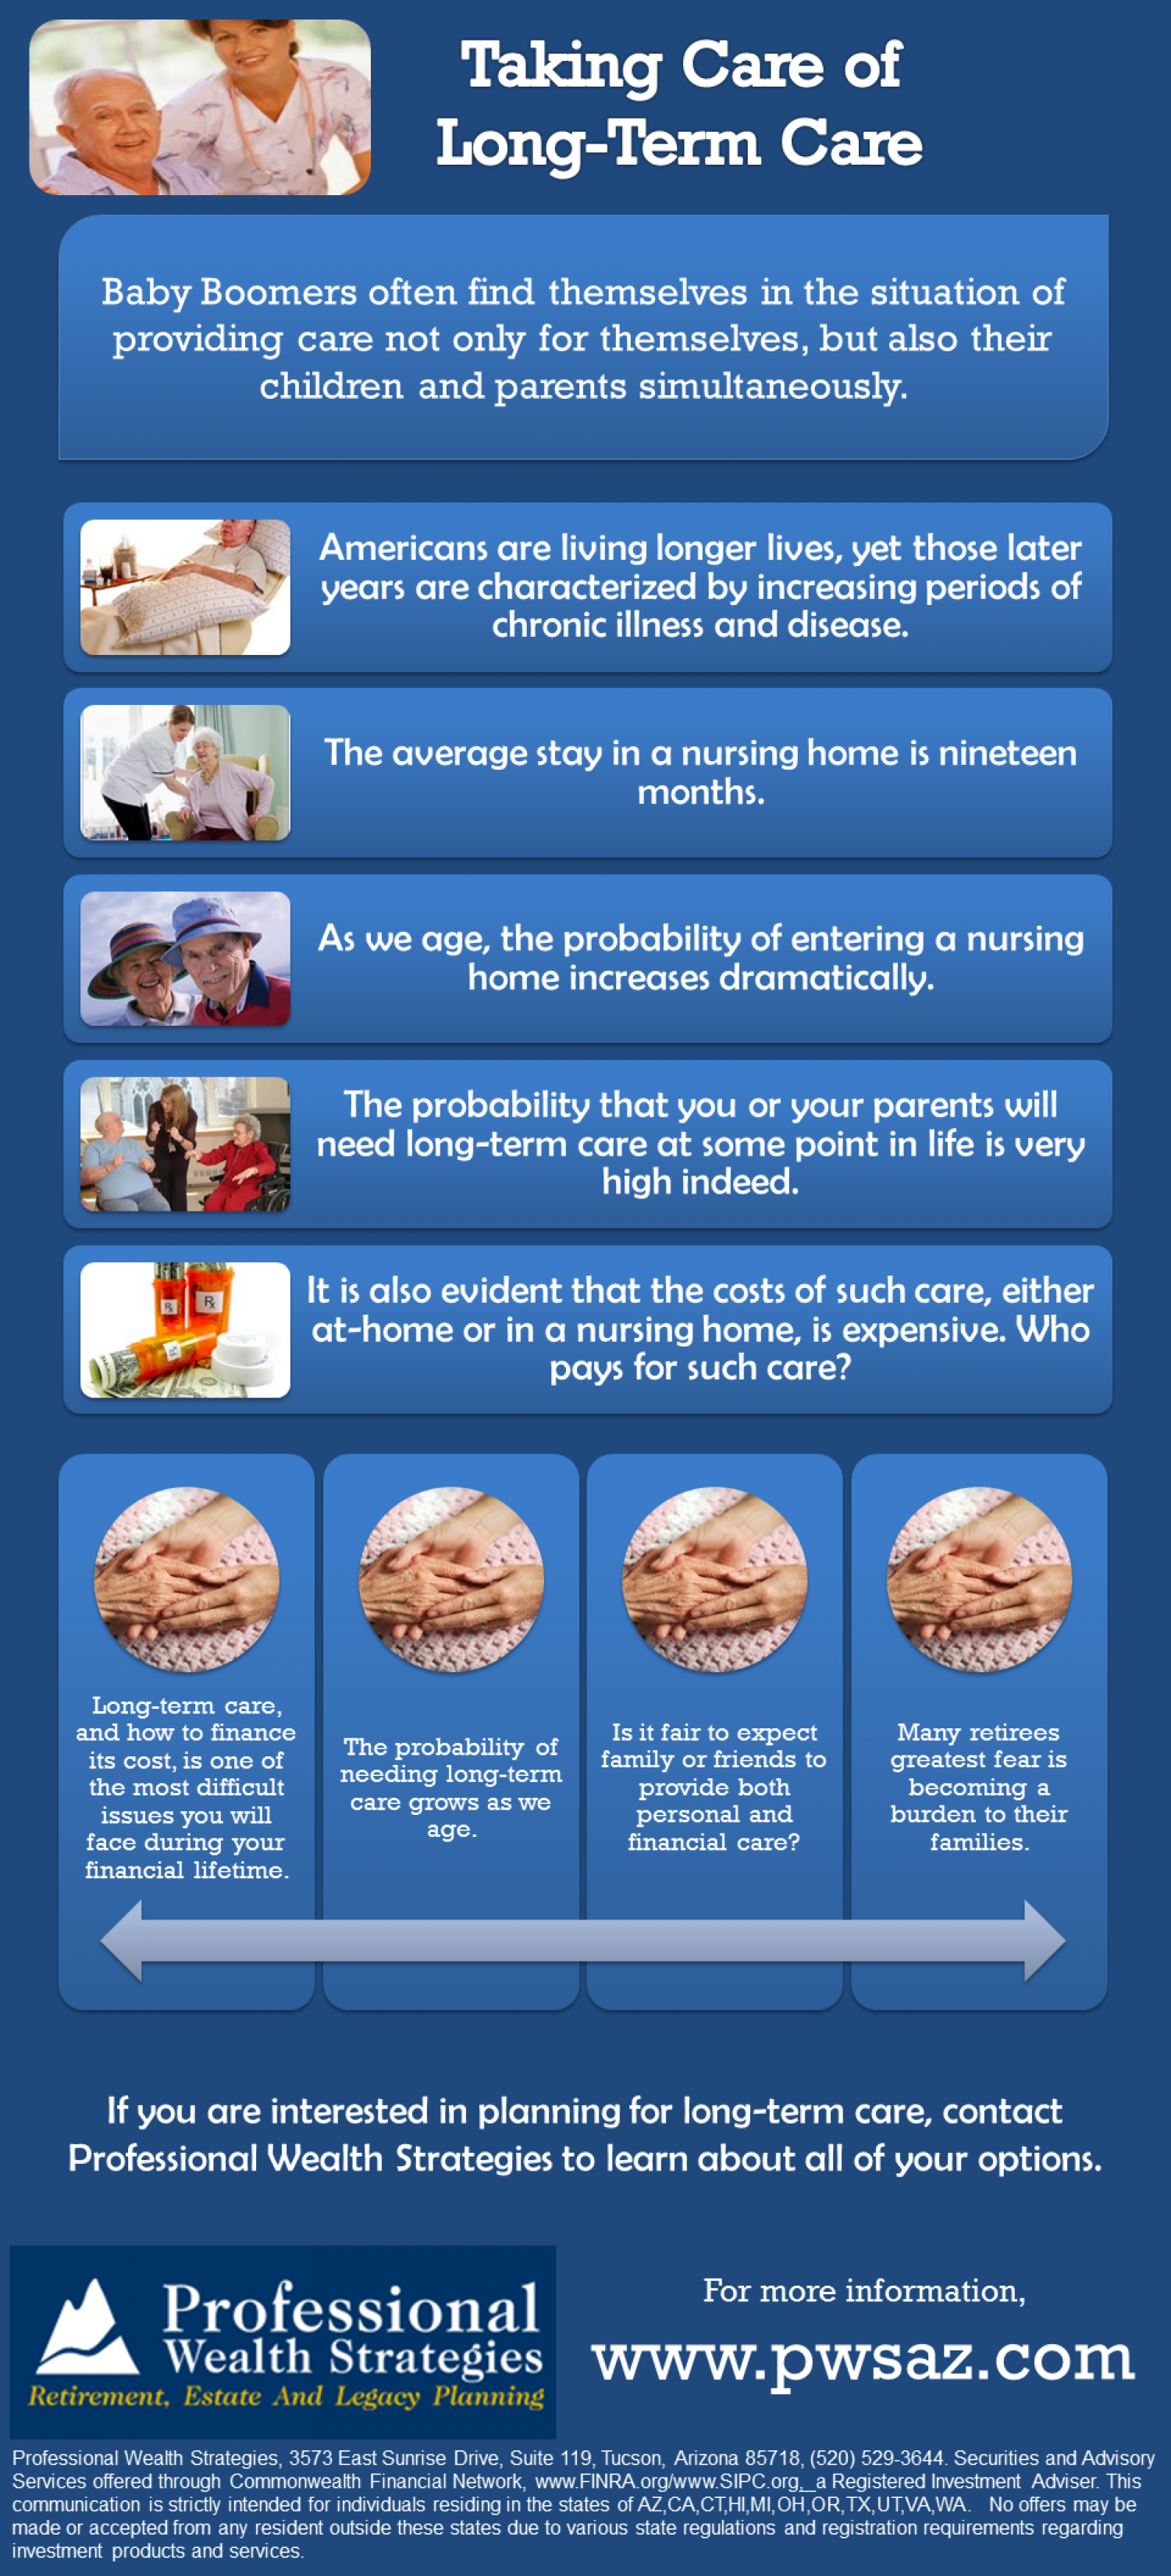 Taking Care of Long-Term Care Infographic